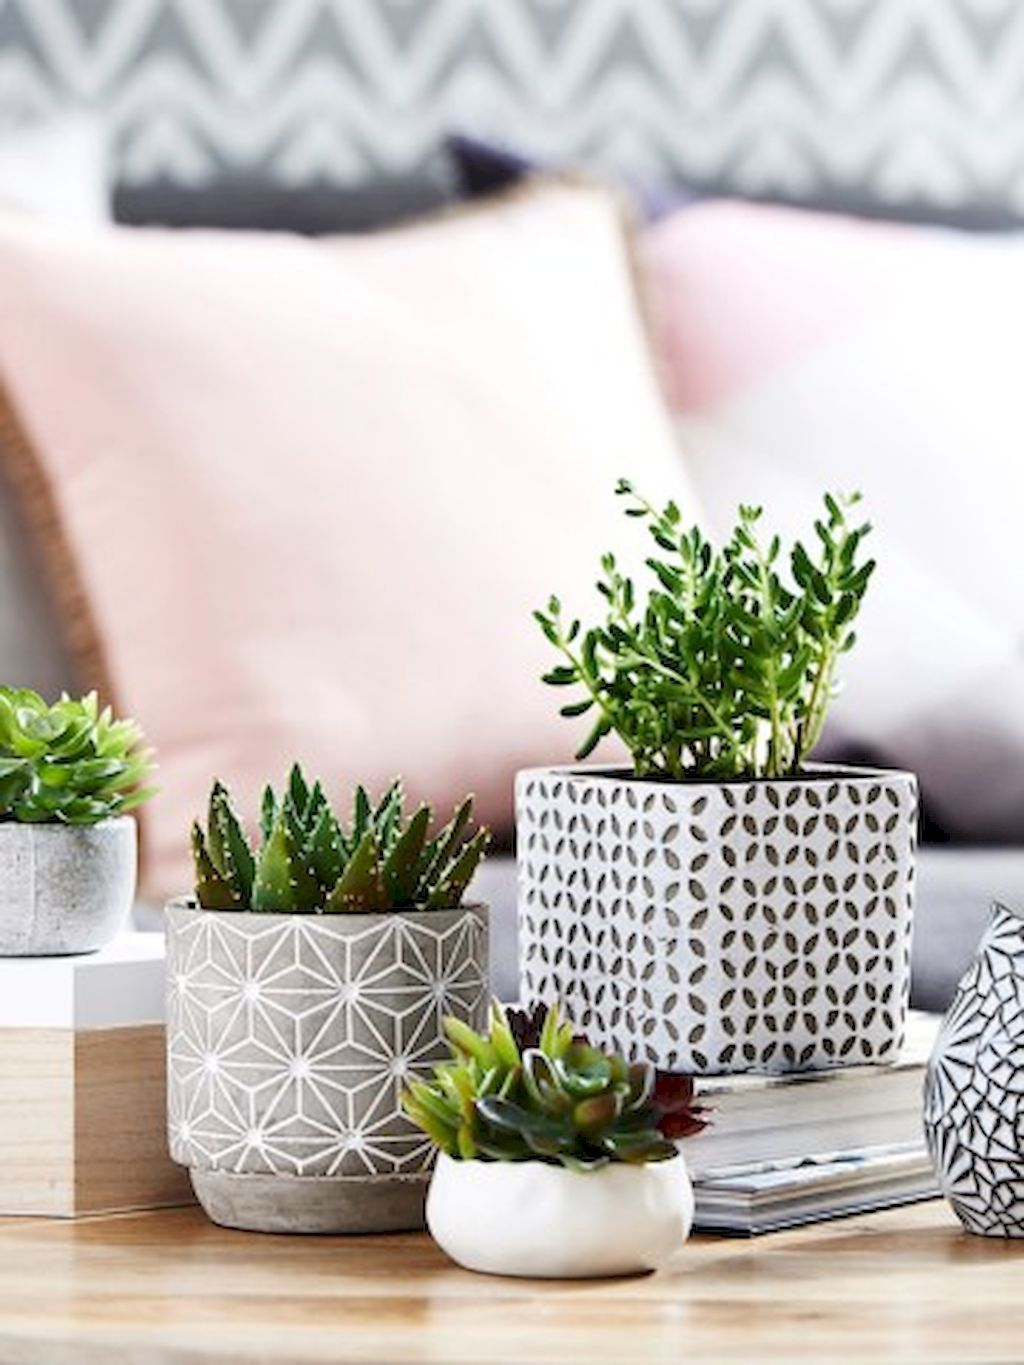 20 greeny indoor plants ideas will purify your rooms air interior rh pinterest com